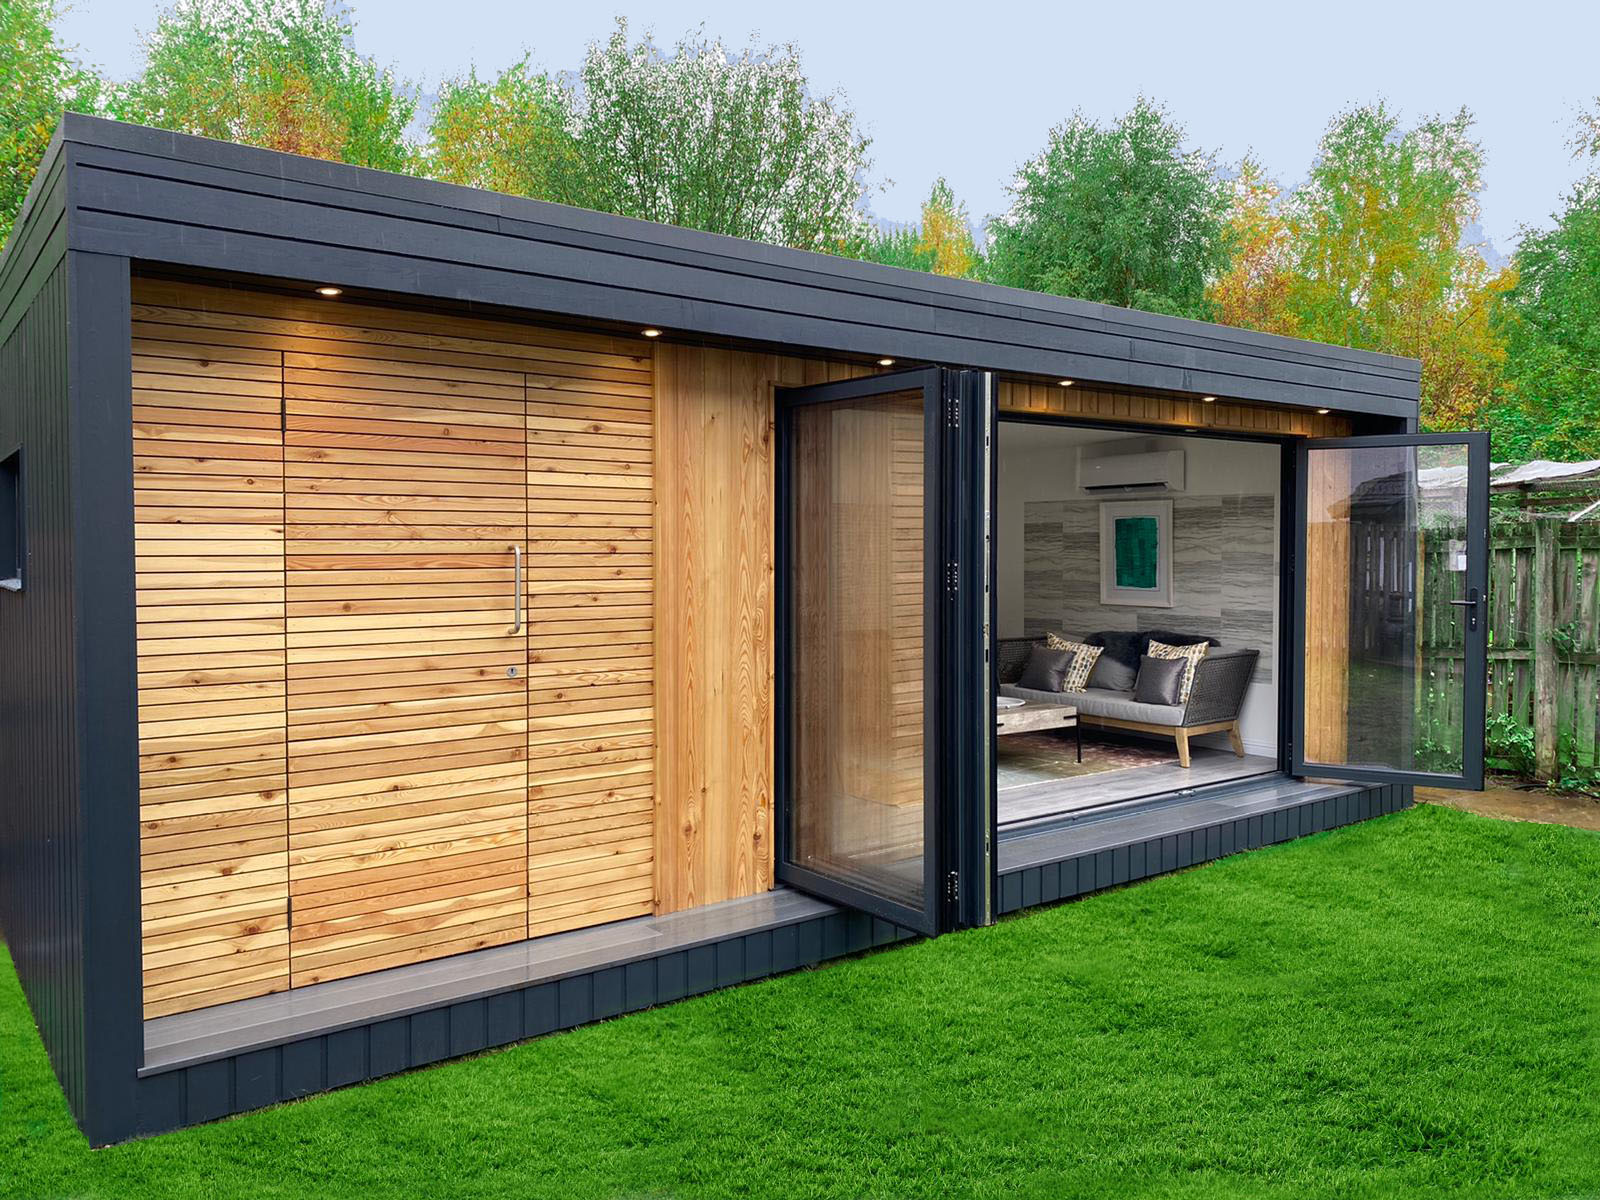 What Insulated Outdoor Room Falkirk Experts Don't Want You To Know